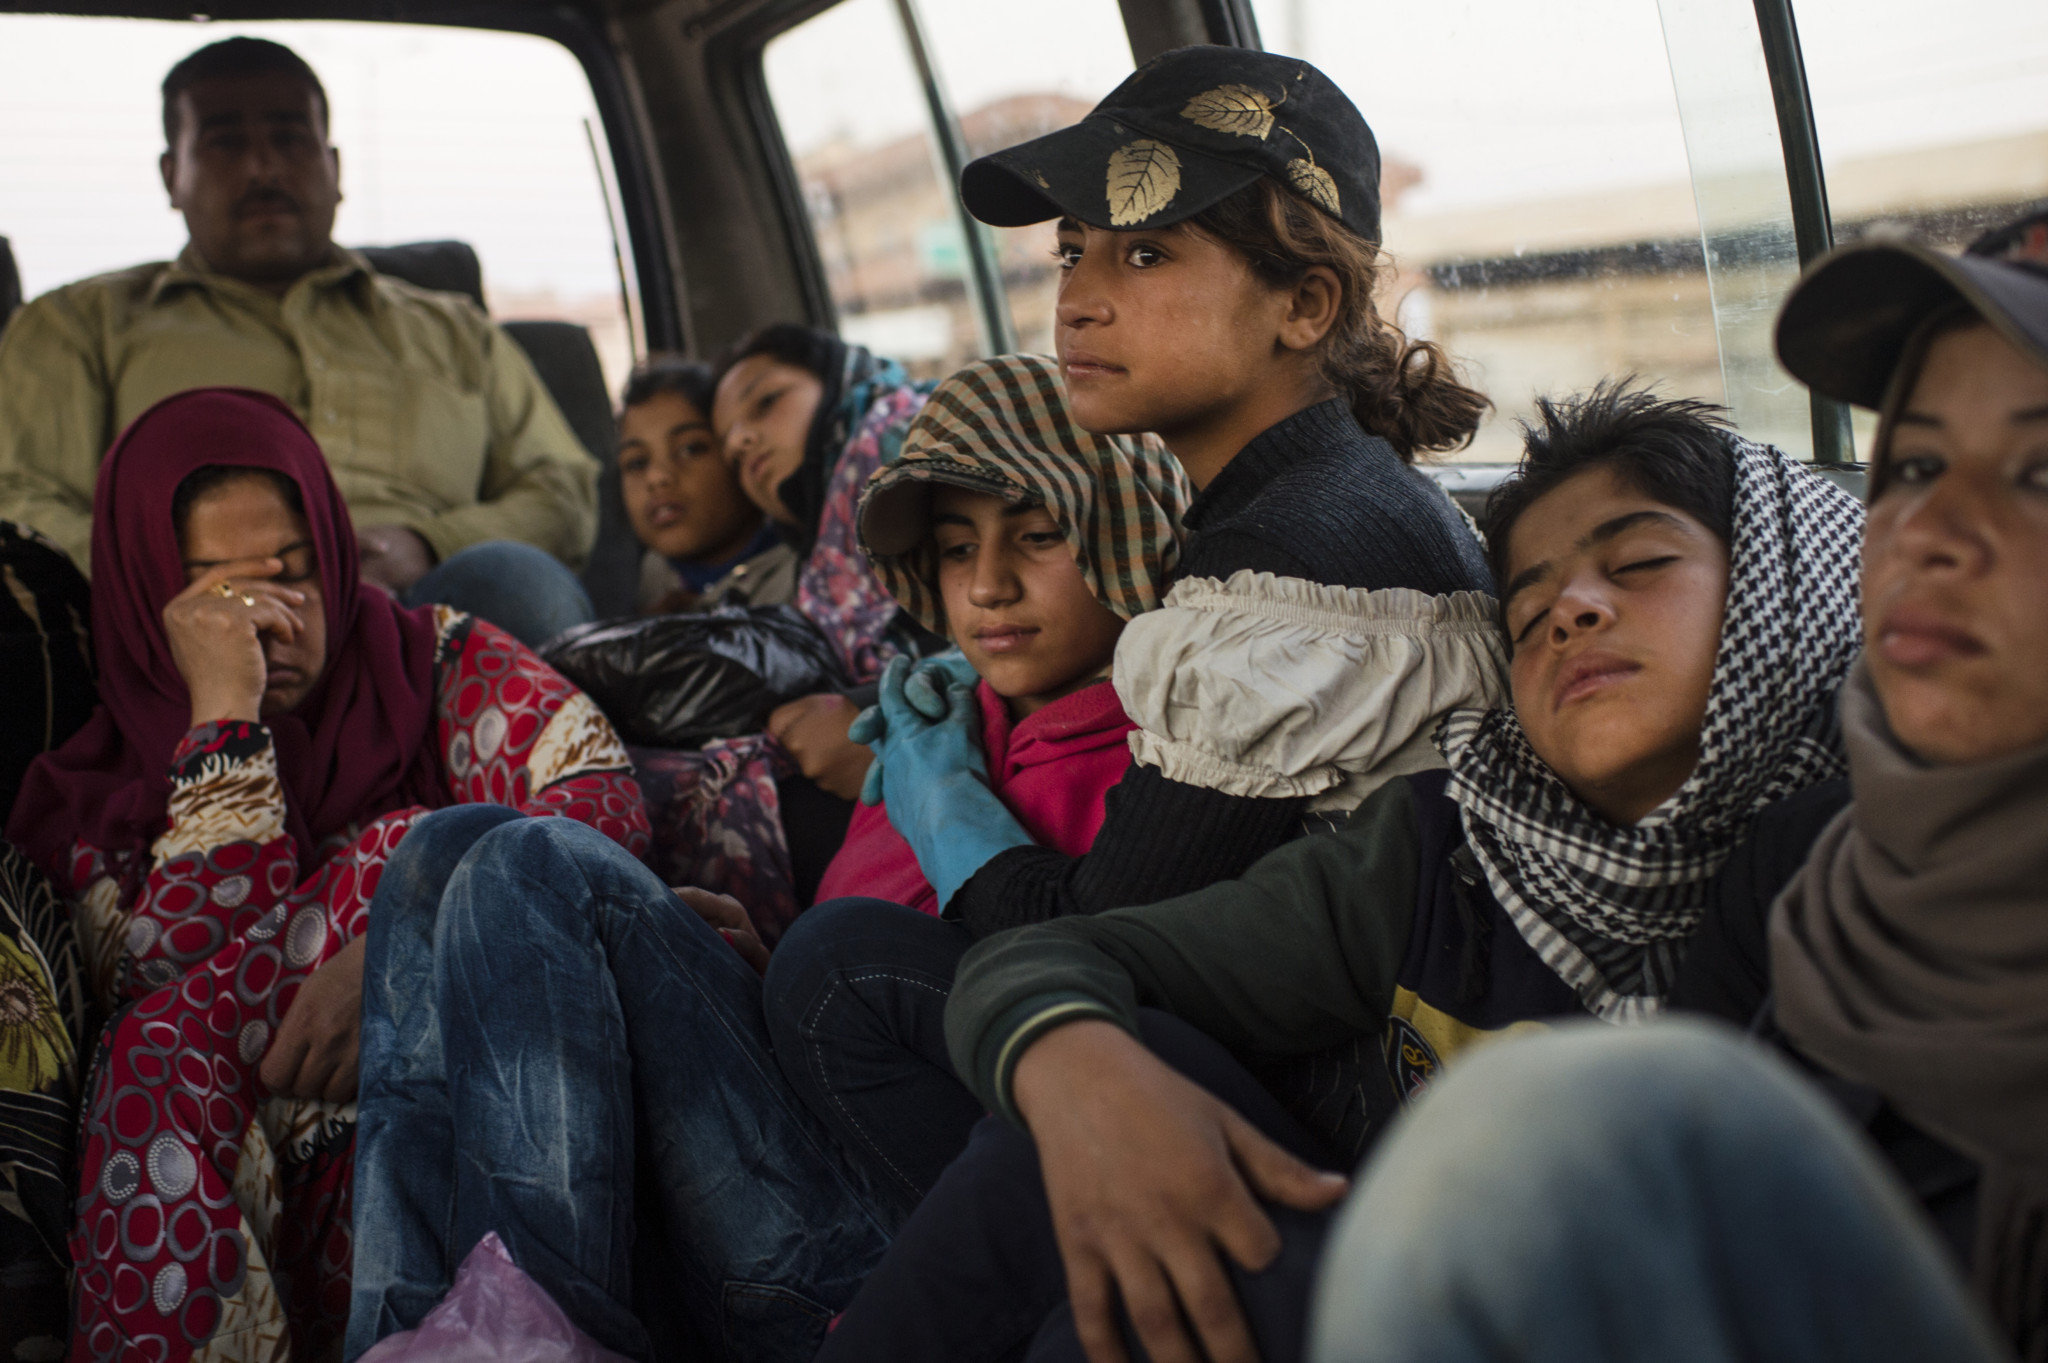 Hanaa rides to work at plum orchard before dawn along with other Syrian refugees from her informal tented settlement in the Bekaa Valley, between the city of Zahle and Baalbak, in Lebanon, August 3, 2015.  Hanaa and her family fled Syria in 2011 at the beginning of the Syrian civil war, and moved to this settlement two years ago, along with other Syrian refugees from Hasaka and the surrounding areas. Hanaa and other children in the settlement work for up to ten hours a day in agricultural lands owned by Lebanese in the area, and earn the equivalent of $5. per day.  Photographs by: Lynsey Addario/Getty Images Reportage